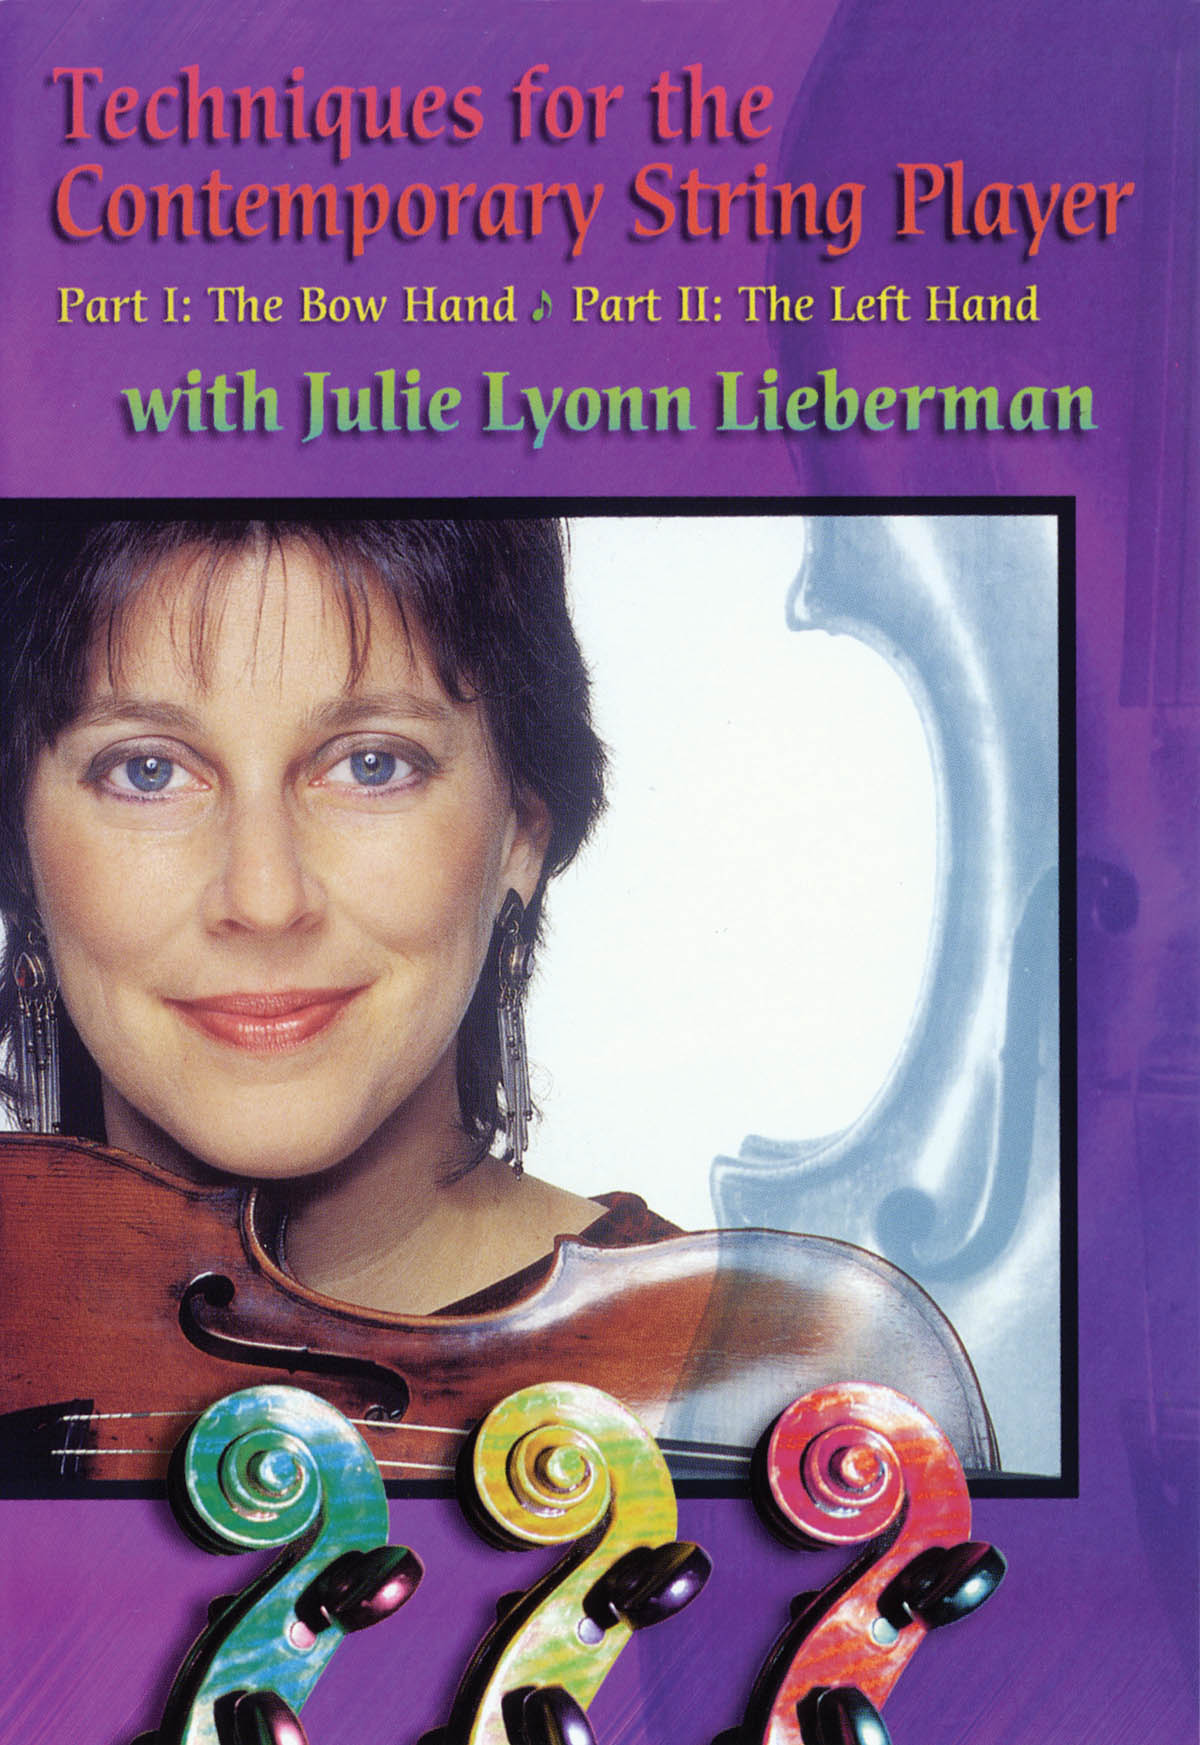 Julie Lyonn Lieberman: Techniques for the Contemporary String Player: Violin